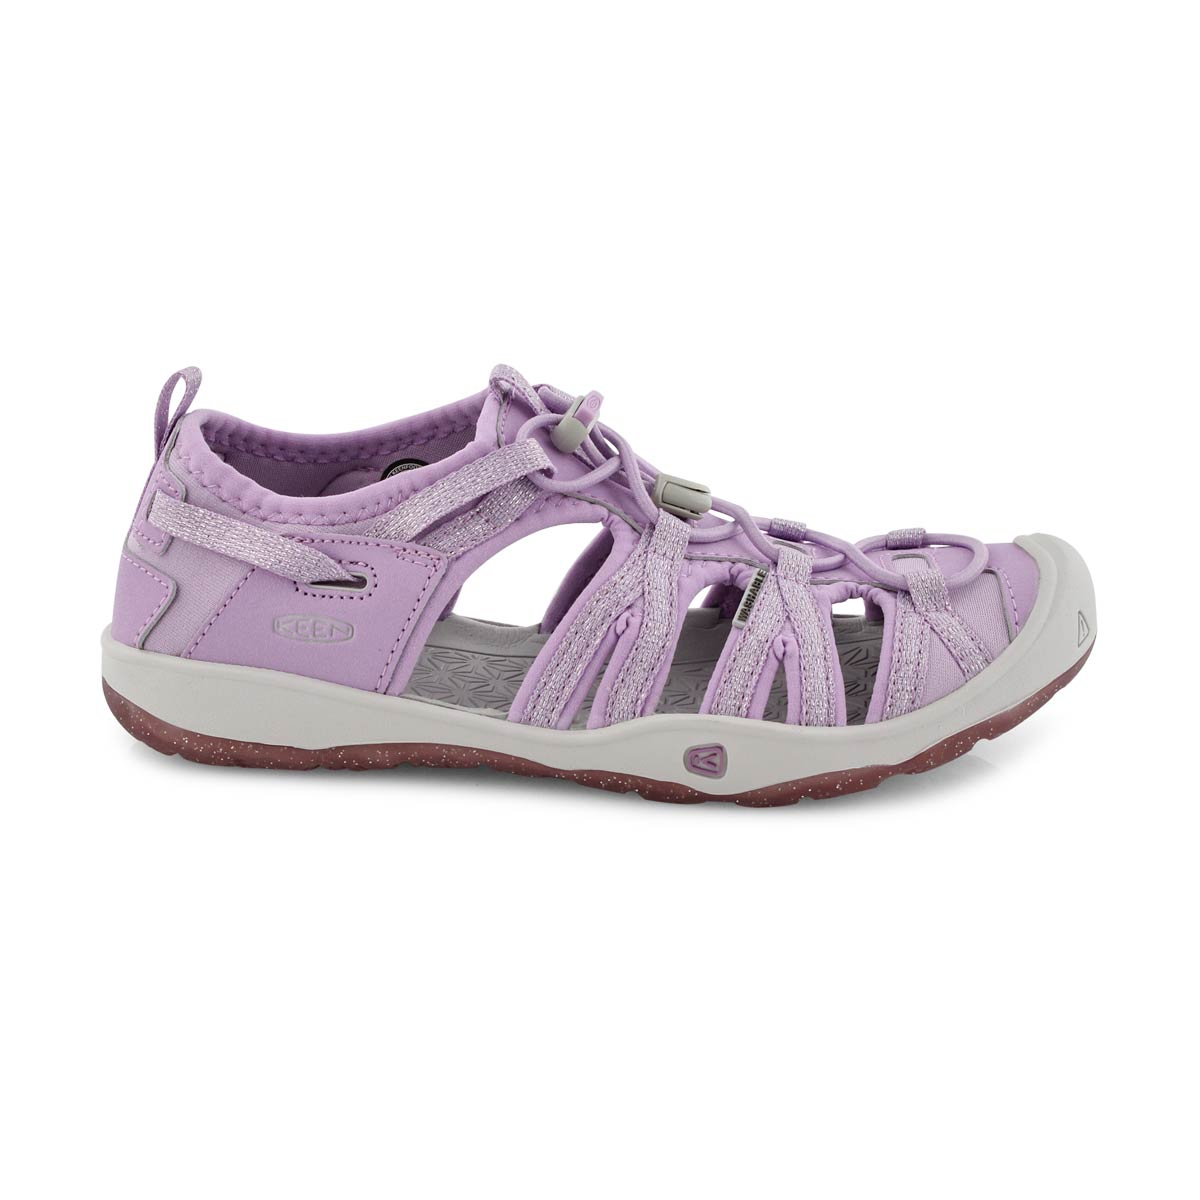 Sandale sport Moxie violet lupin, fille